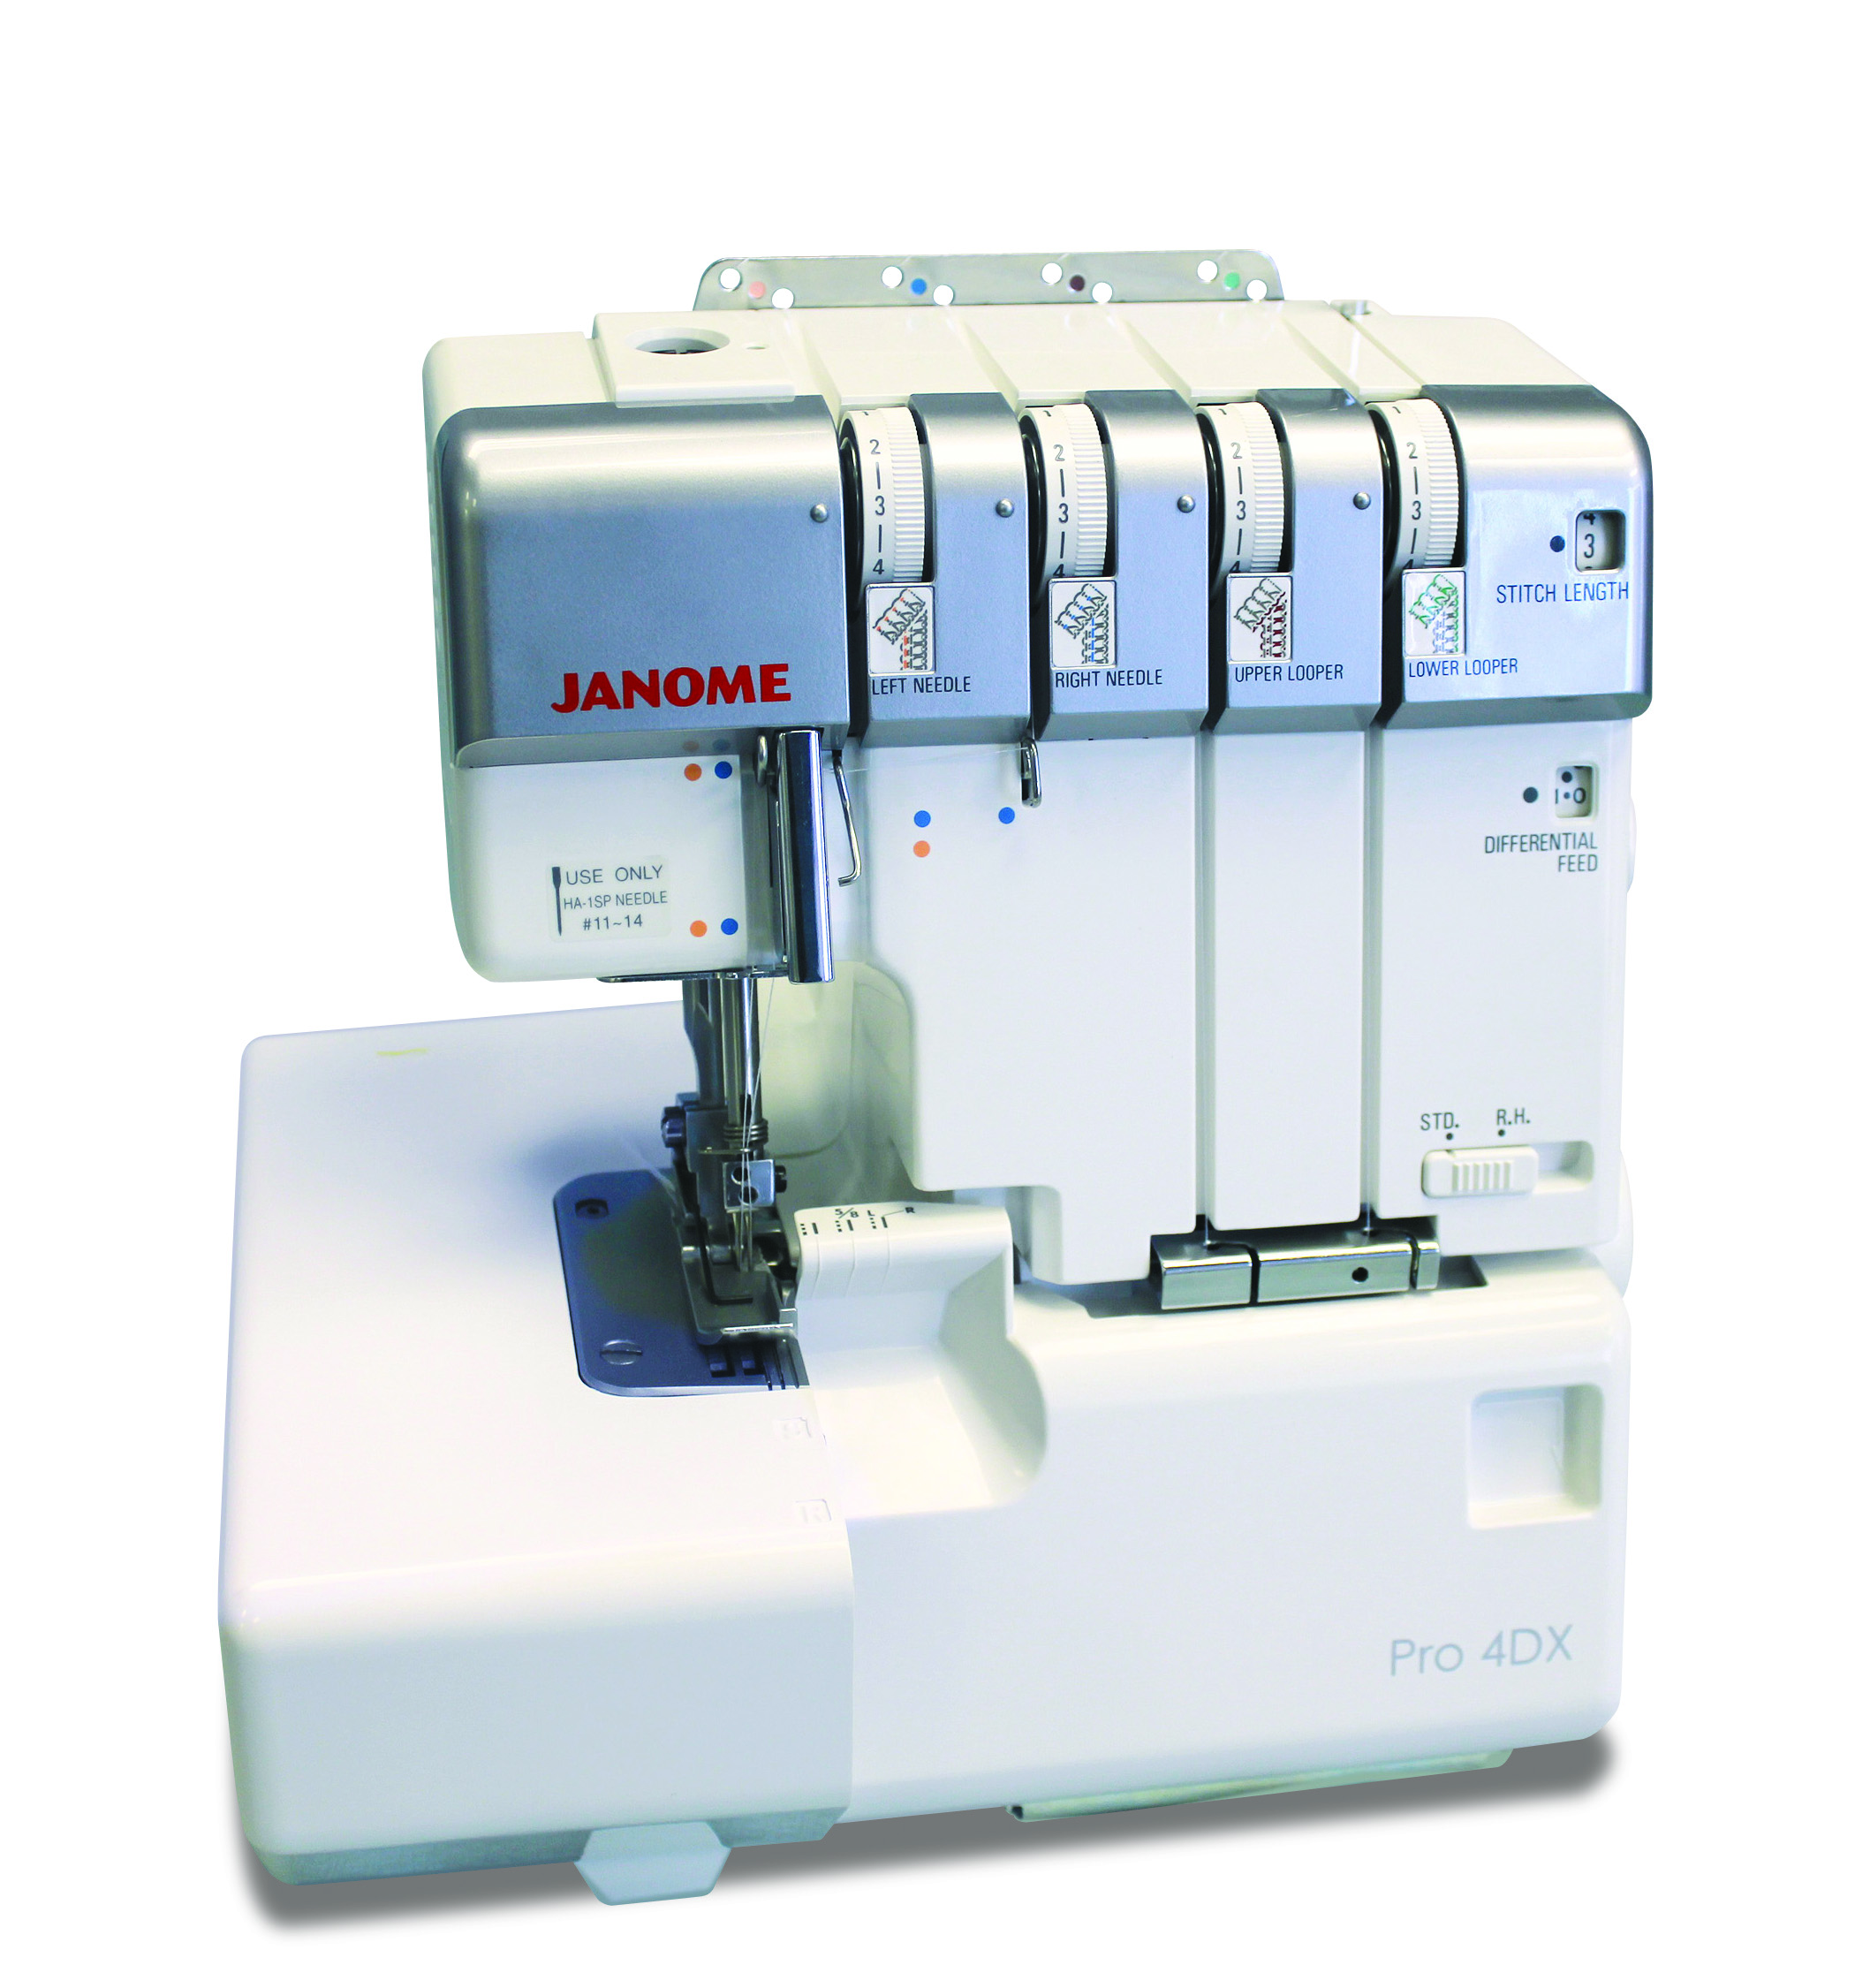 selection quilting crafts aluminum product to interior sewing today and easy shipping quilt needle janome threader overstock machine with use frame automatic free stitch